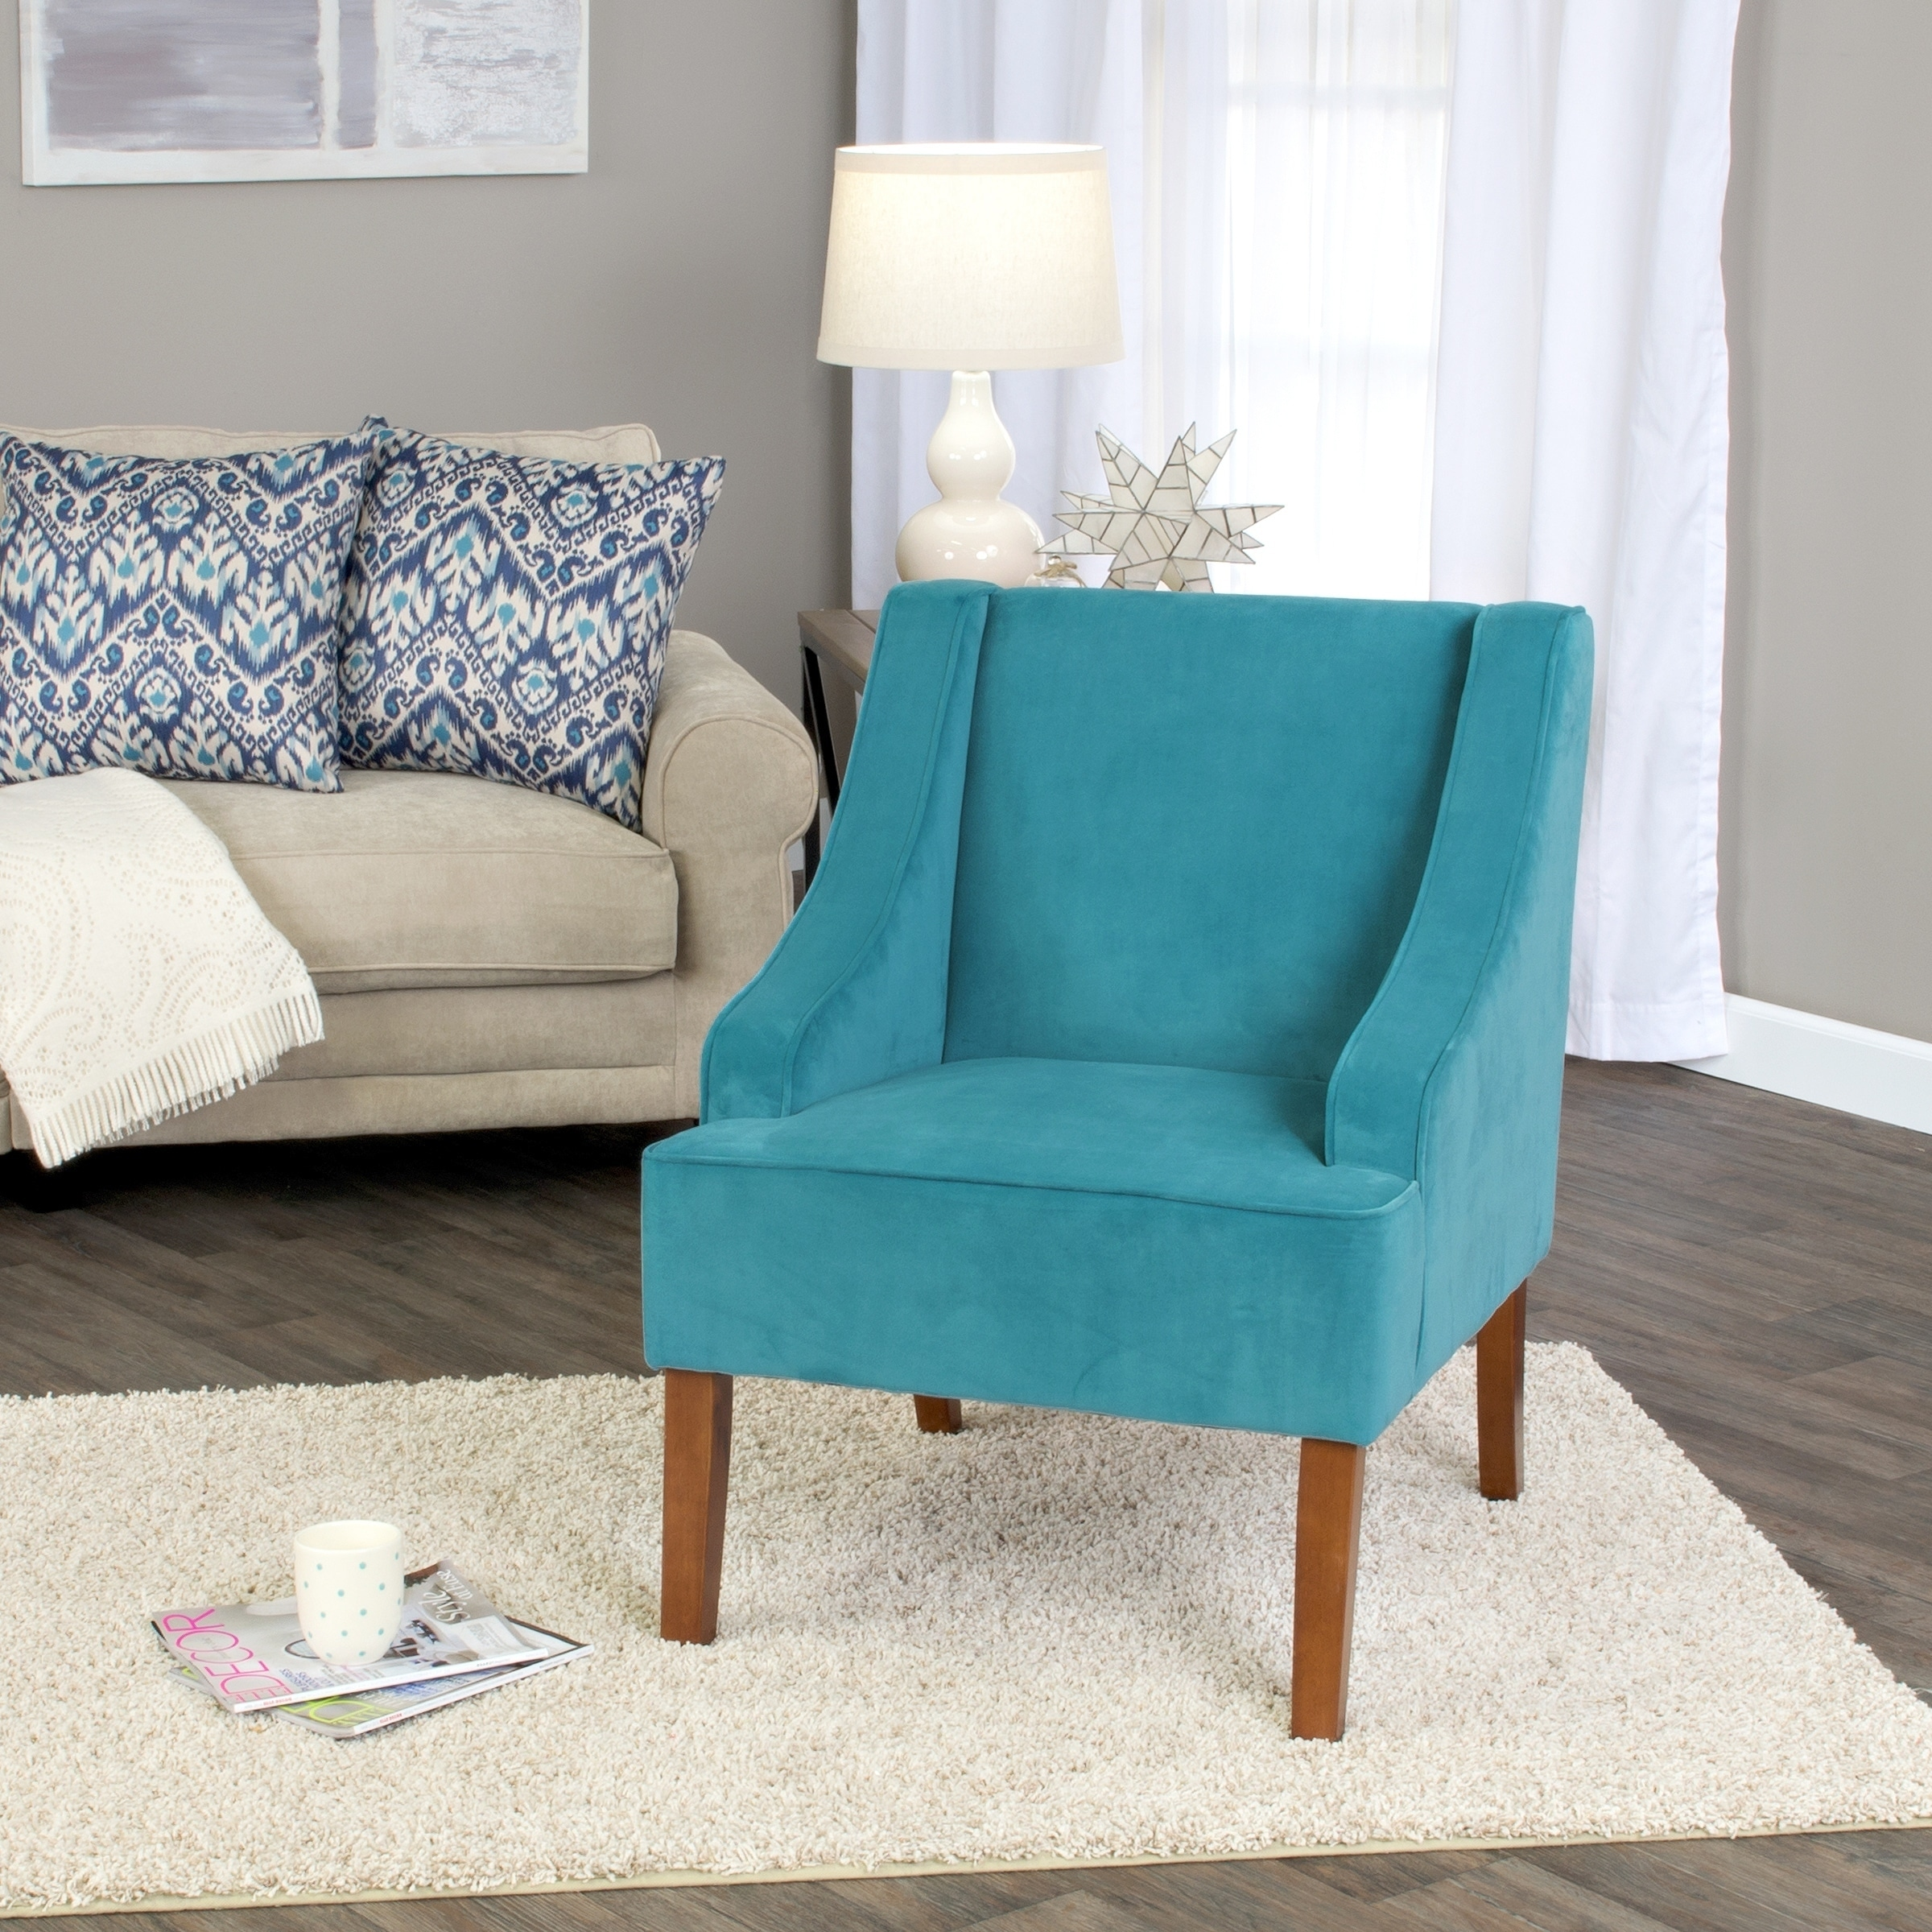 Turquoise Side Chair Homepop Swoop Arm Accent Chair In Teal Turquoise Velvet